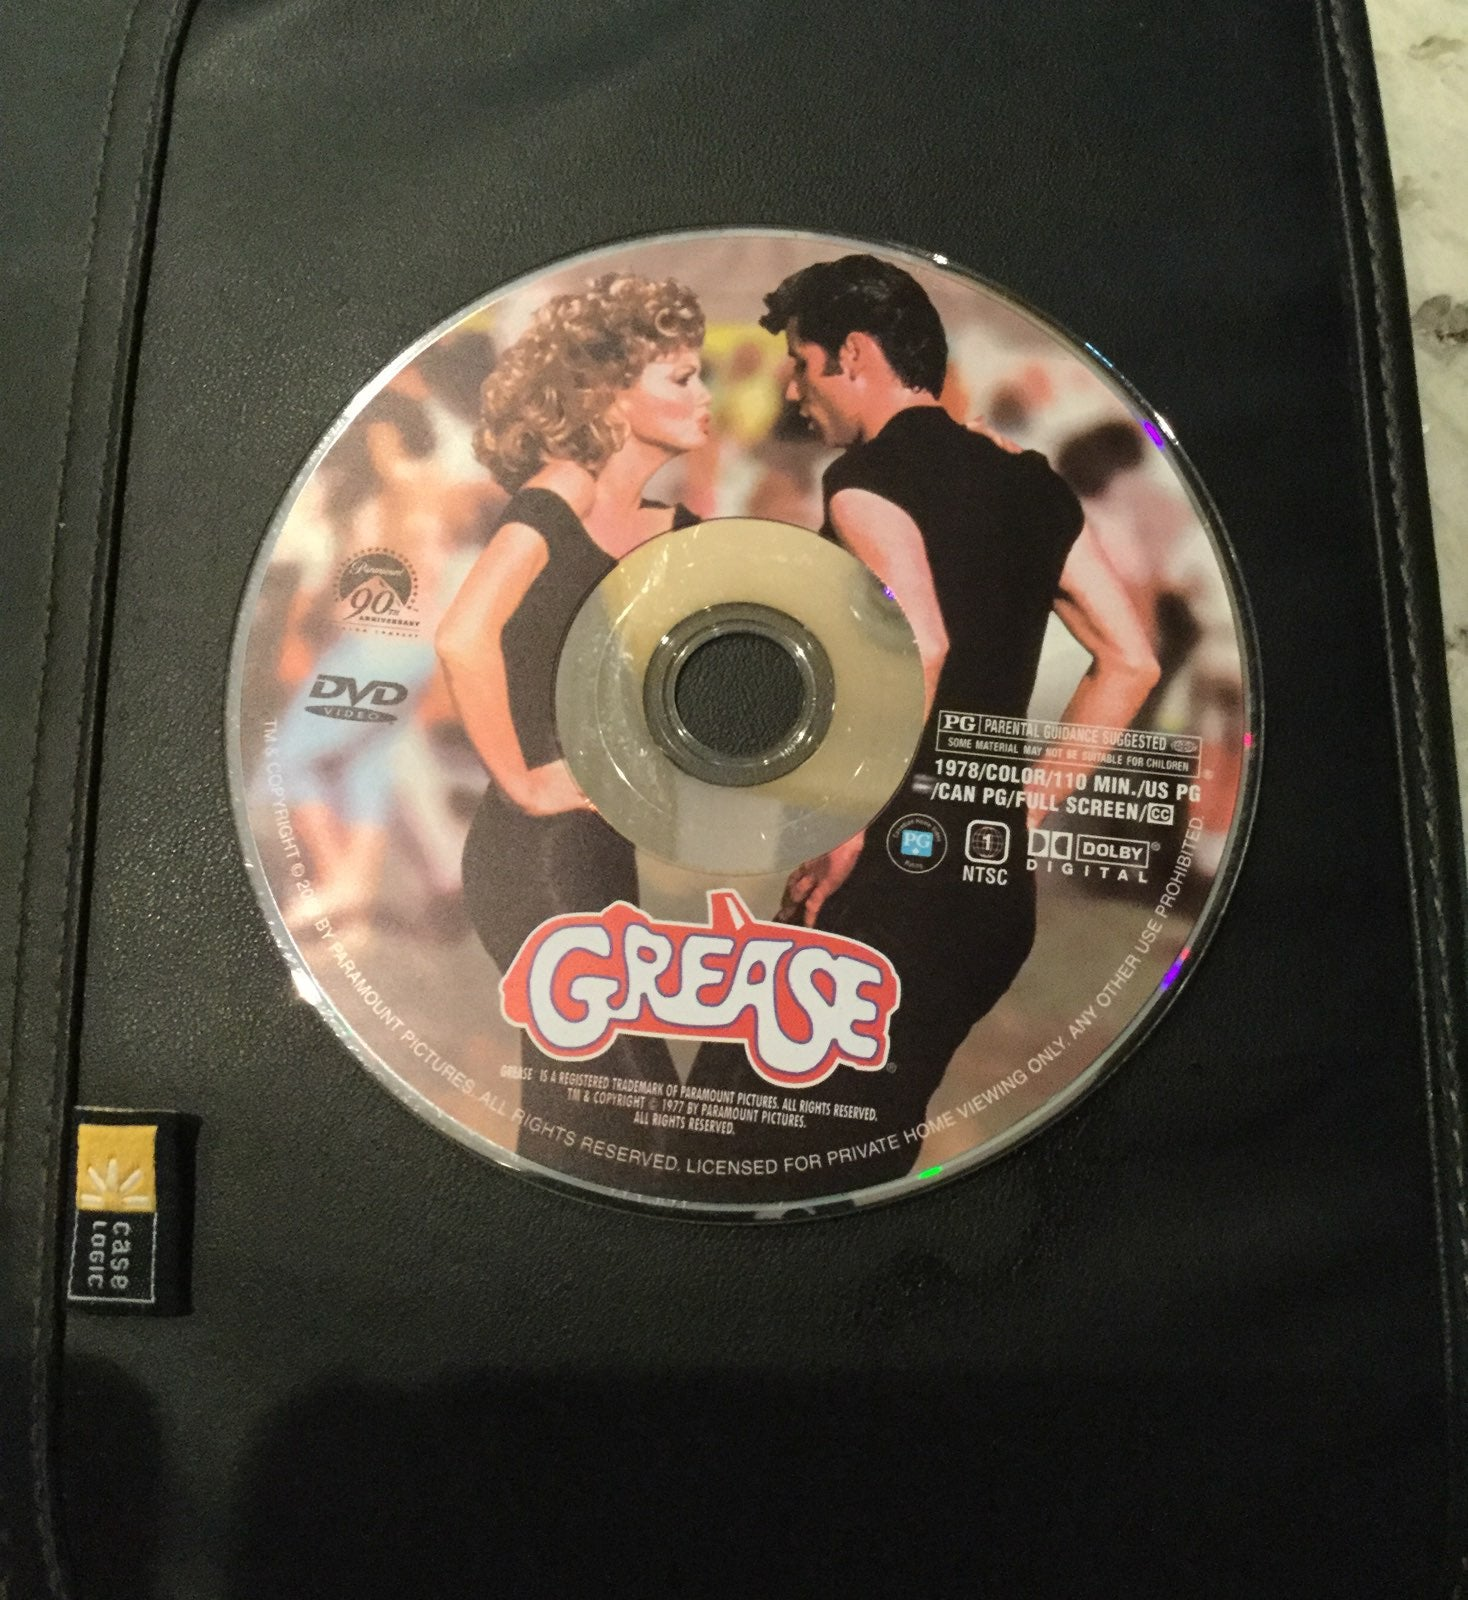 Grease on DVD